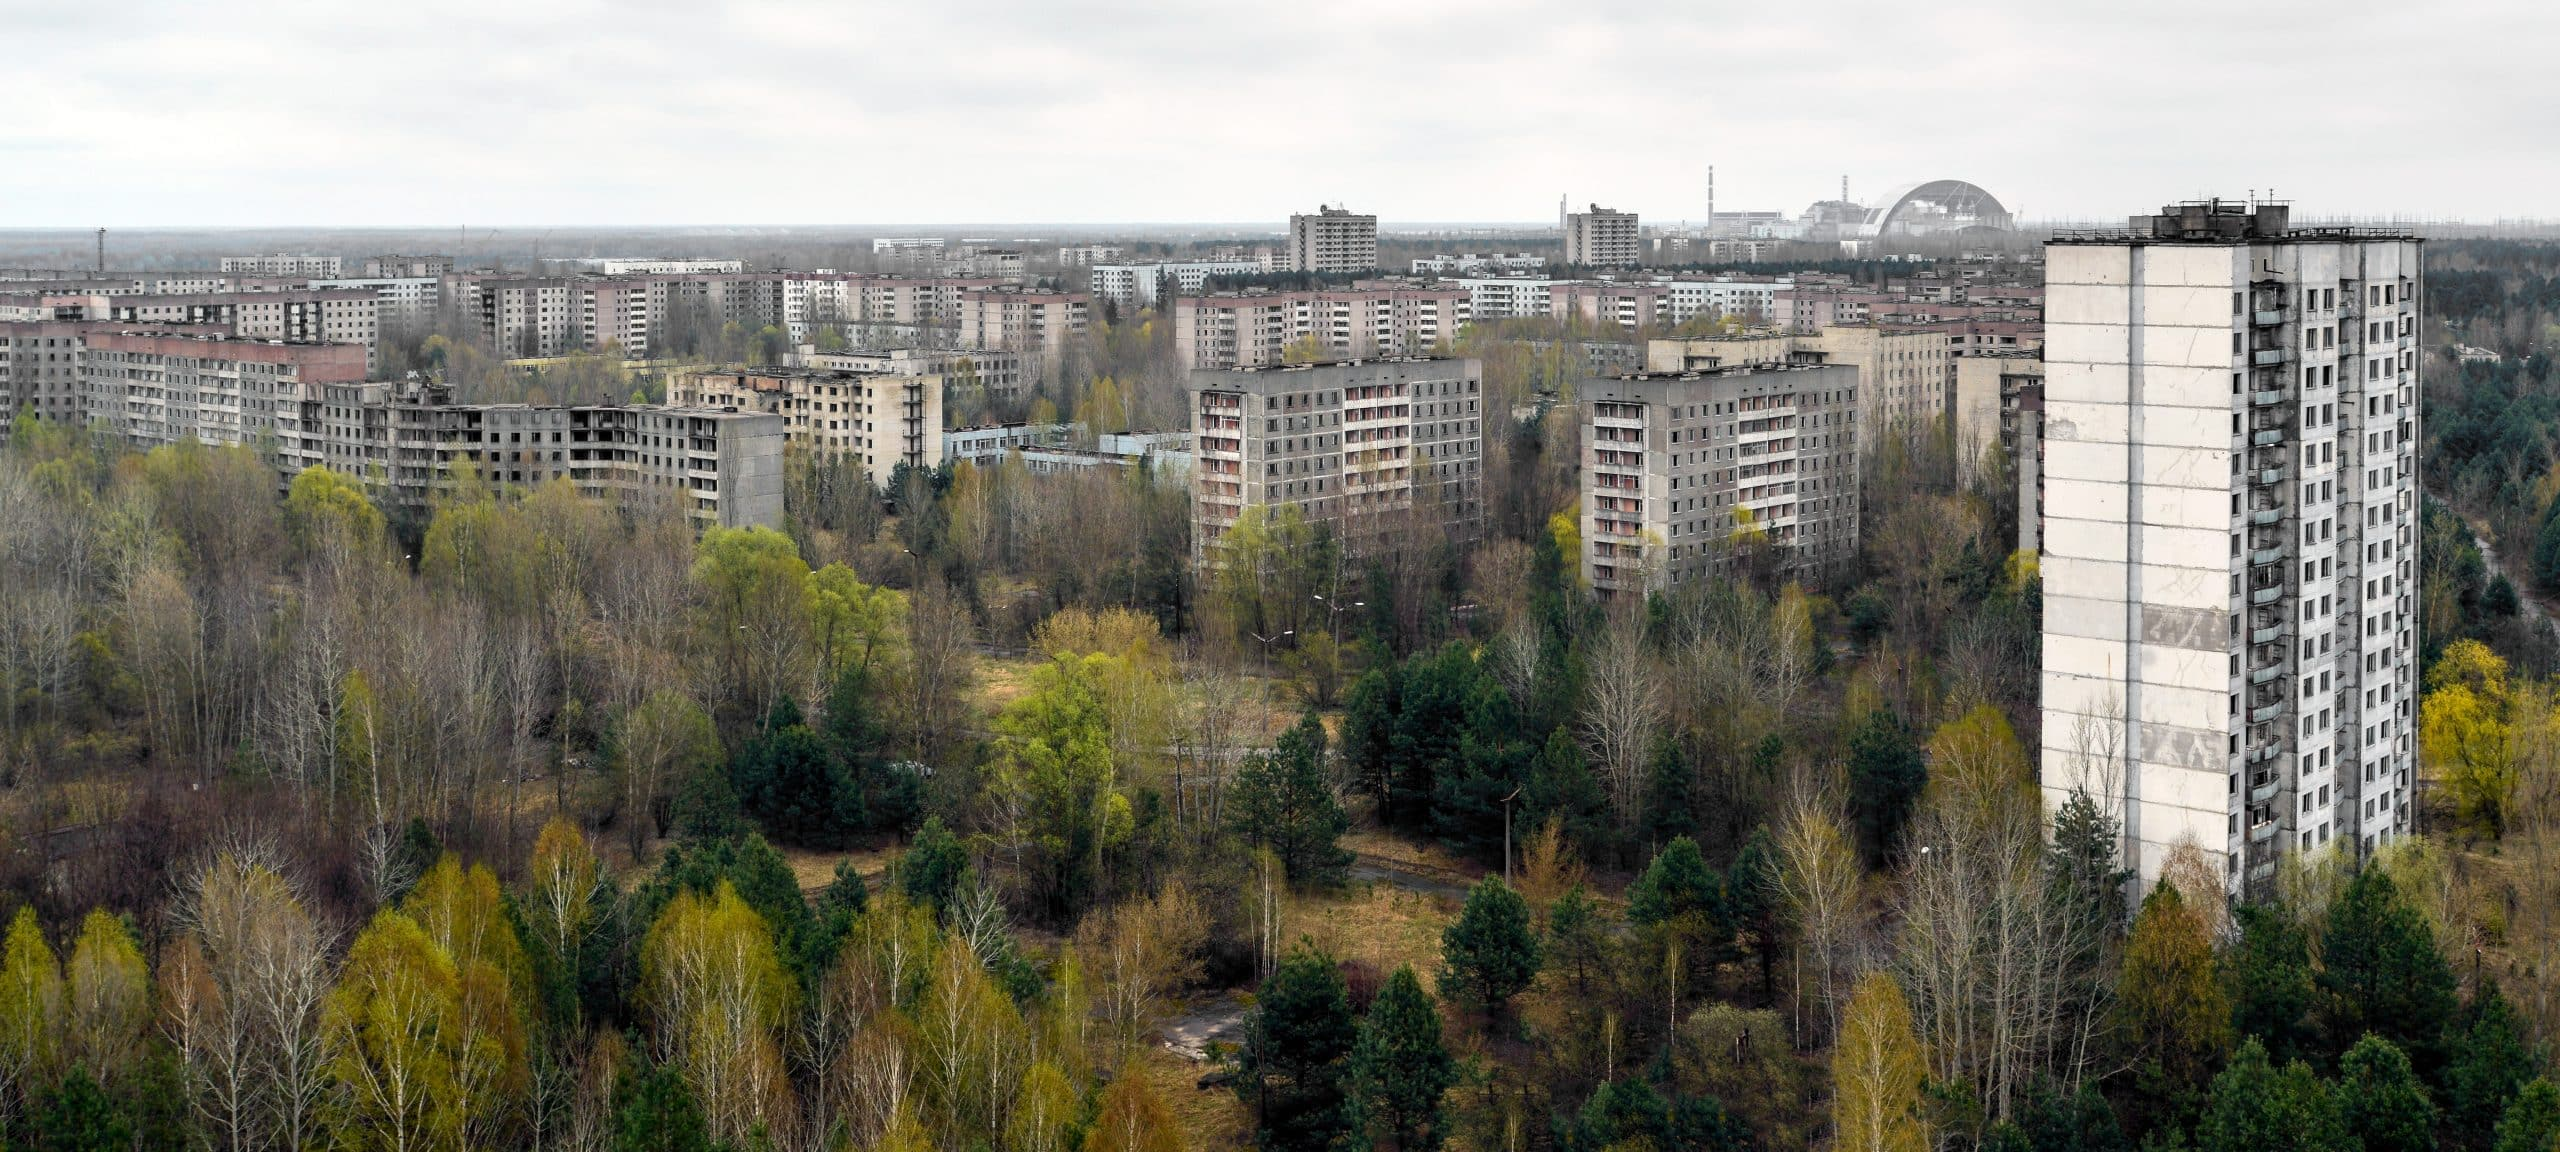 Chernobyl 35 years later